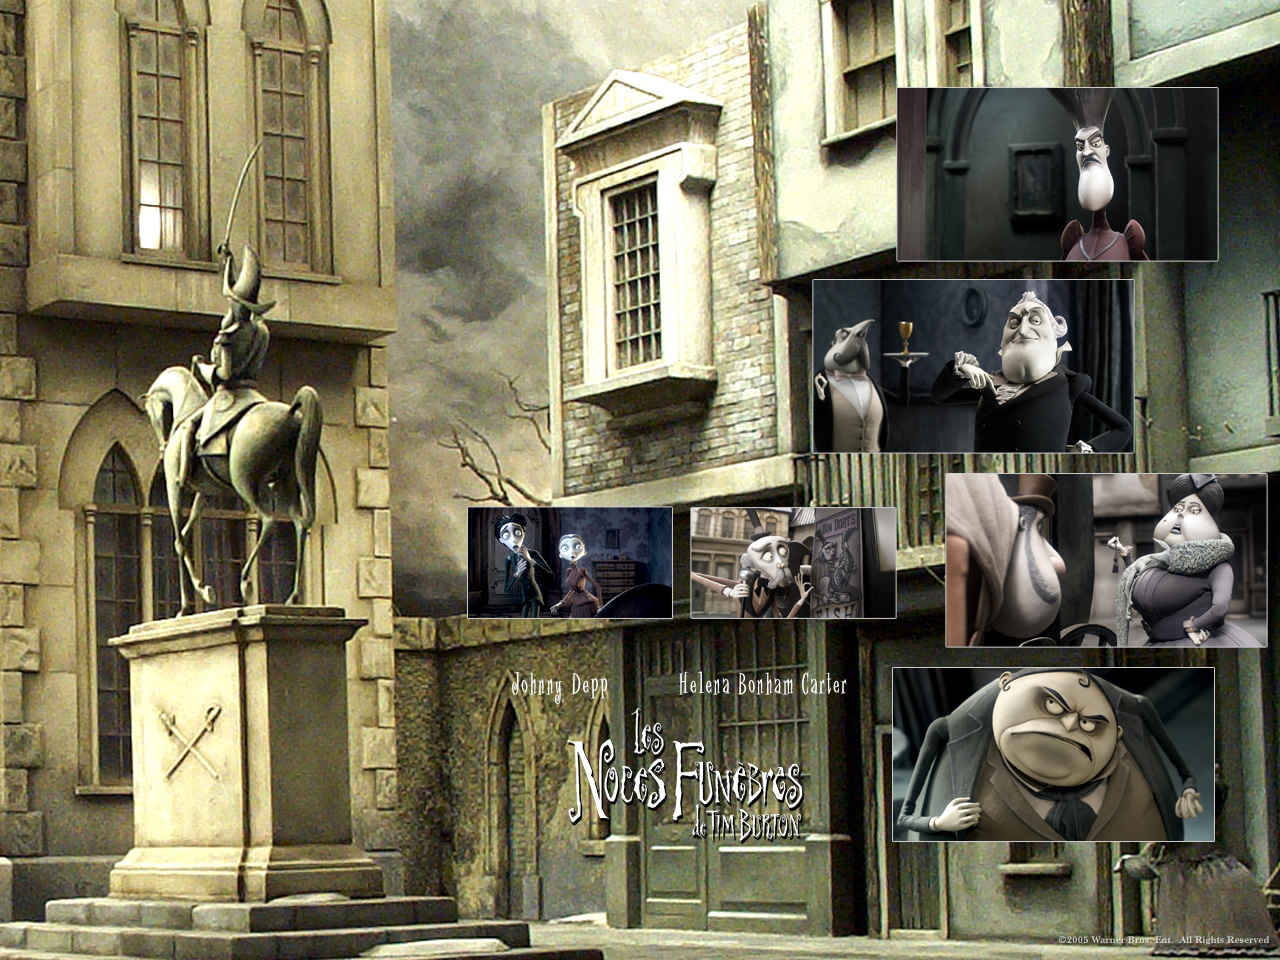 Wallpaper LES NOCES FUNEBRES de TIM BURTON Ville